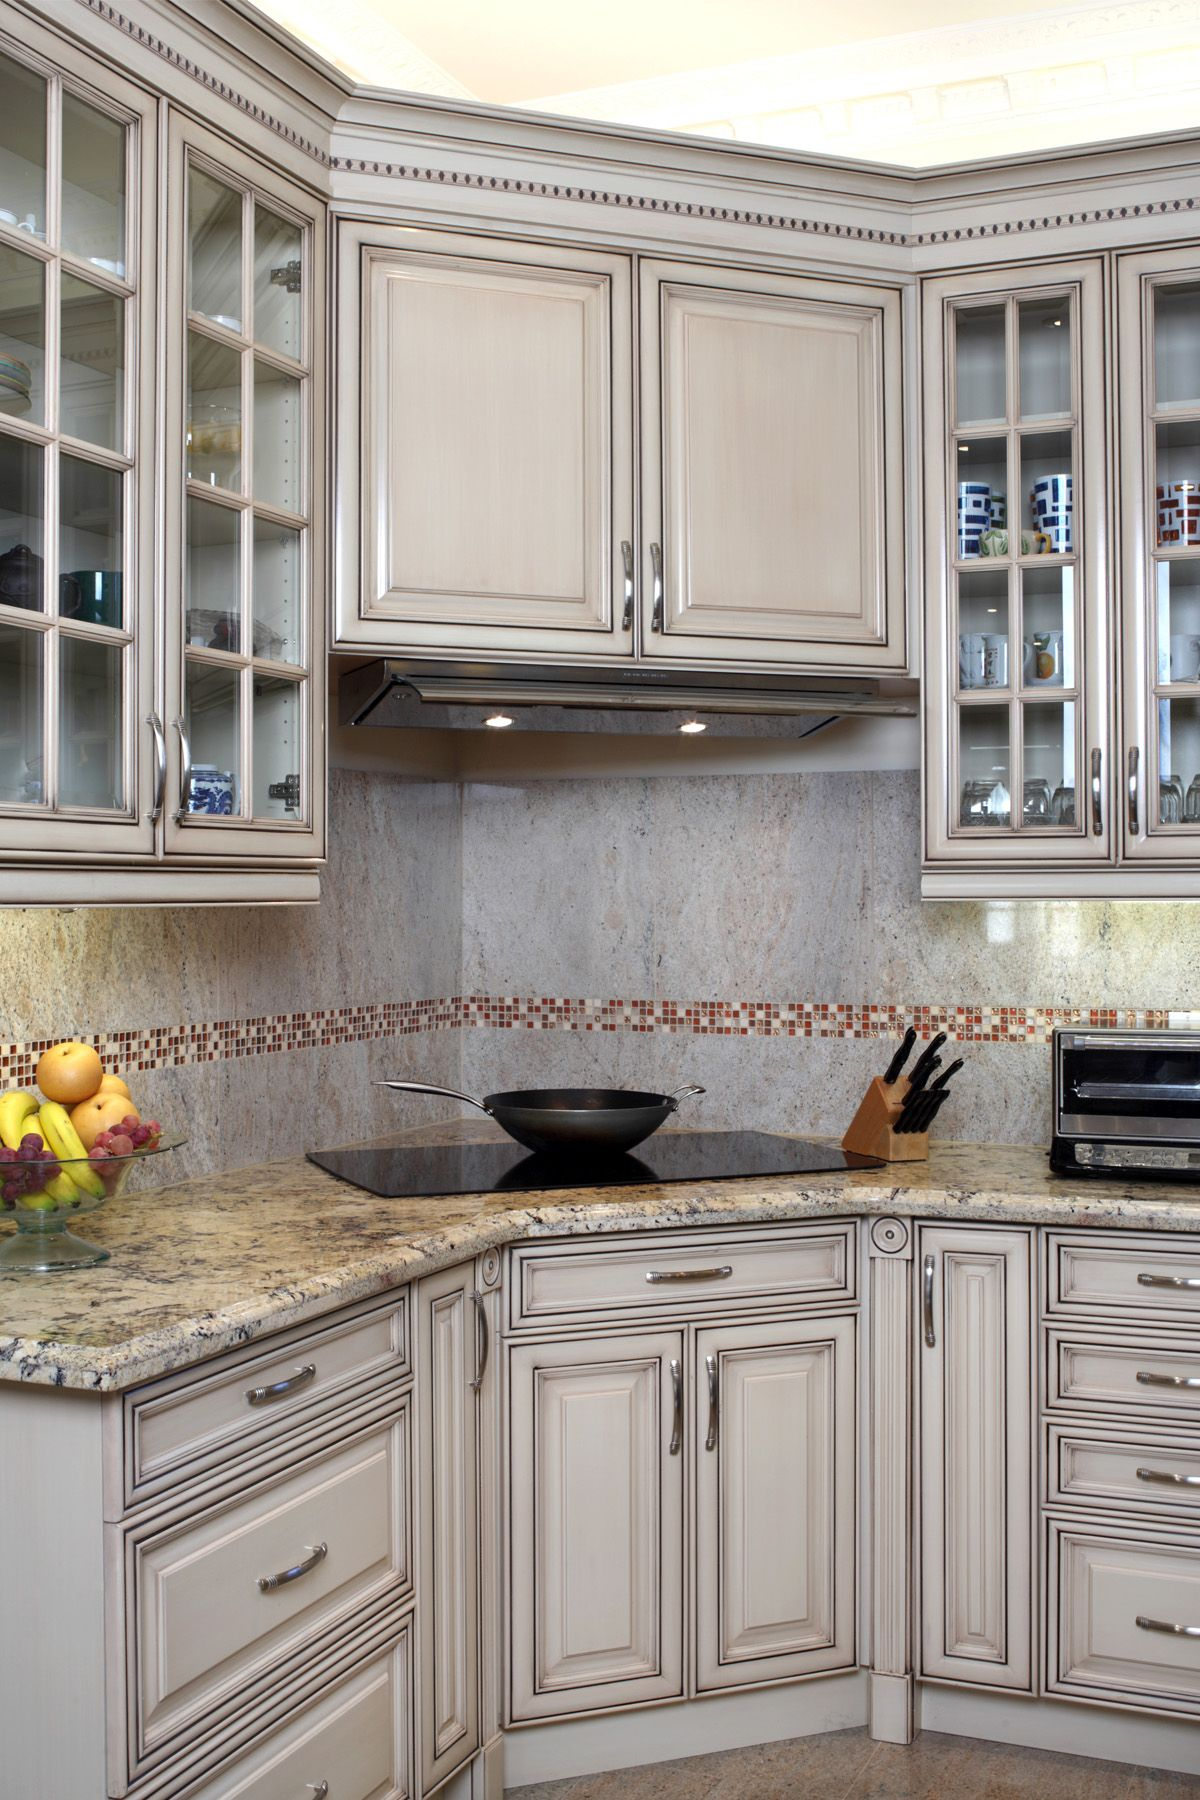 Small Kitchen Design Toronto 15 Kitchen Trends Designers Never Want To See Again Kitchen Trends